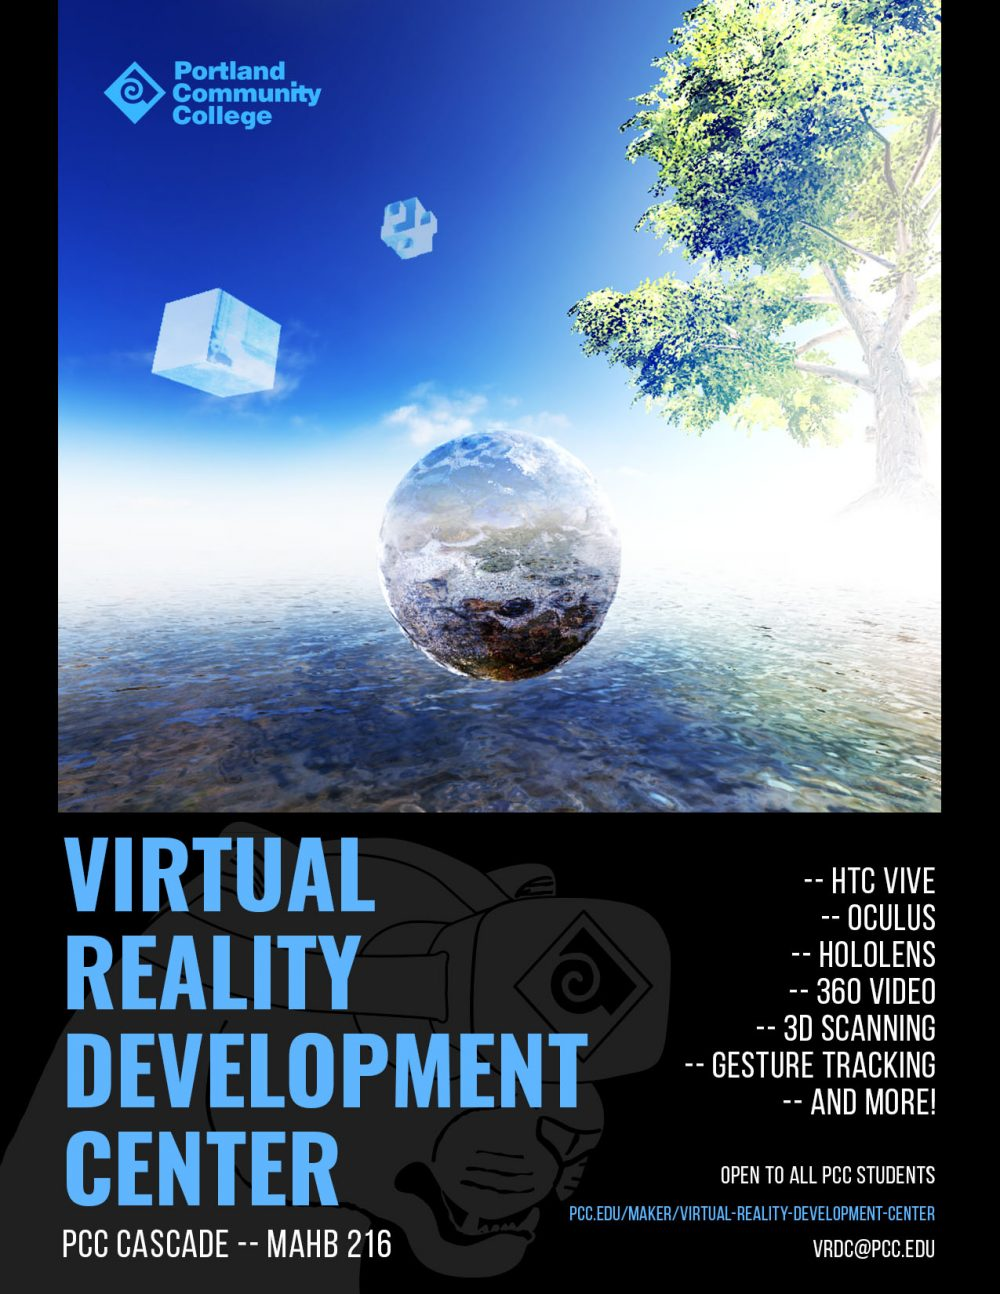 flyer for the Virtual Reality Development Center